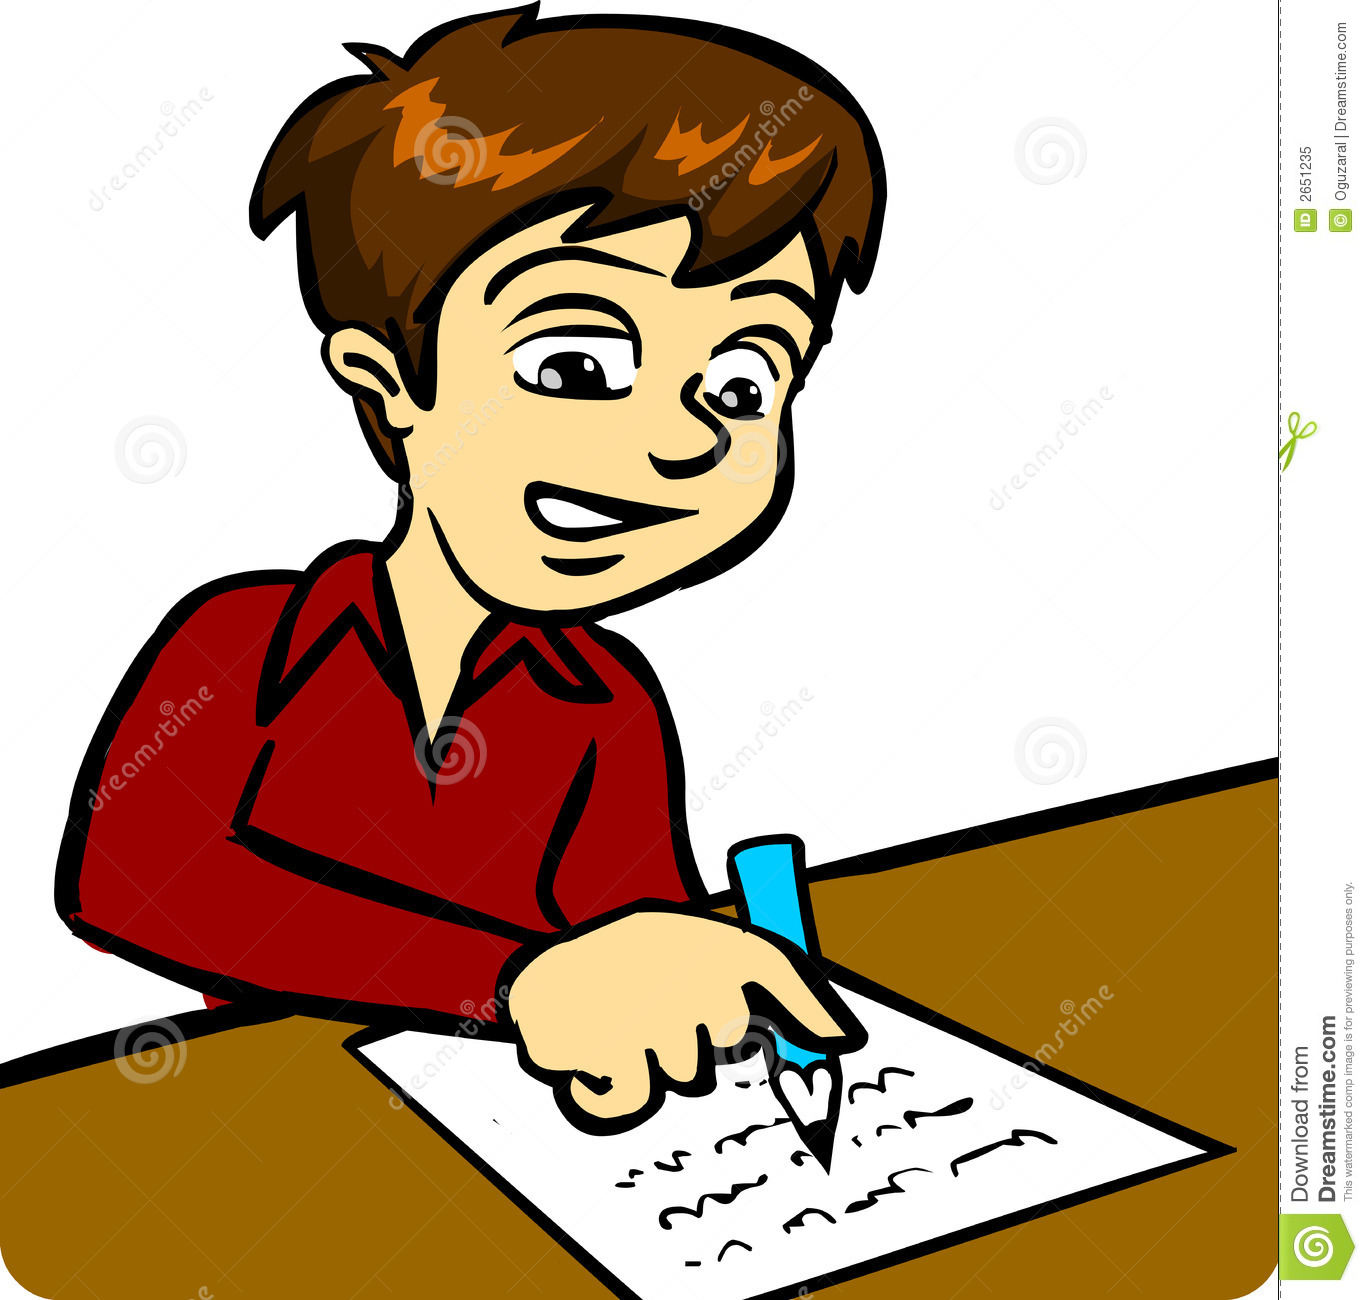 hight resolution of girl writing clipart clipart library free clipart images